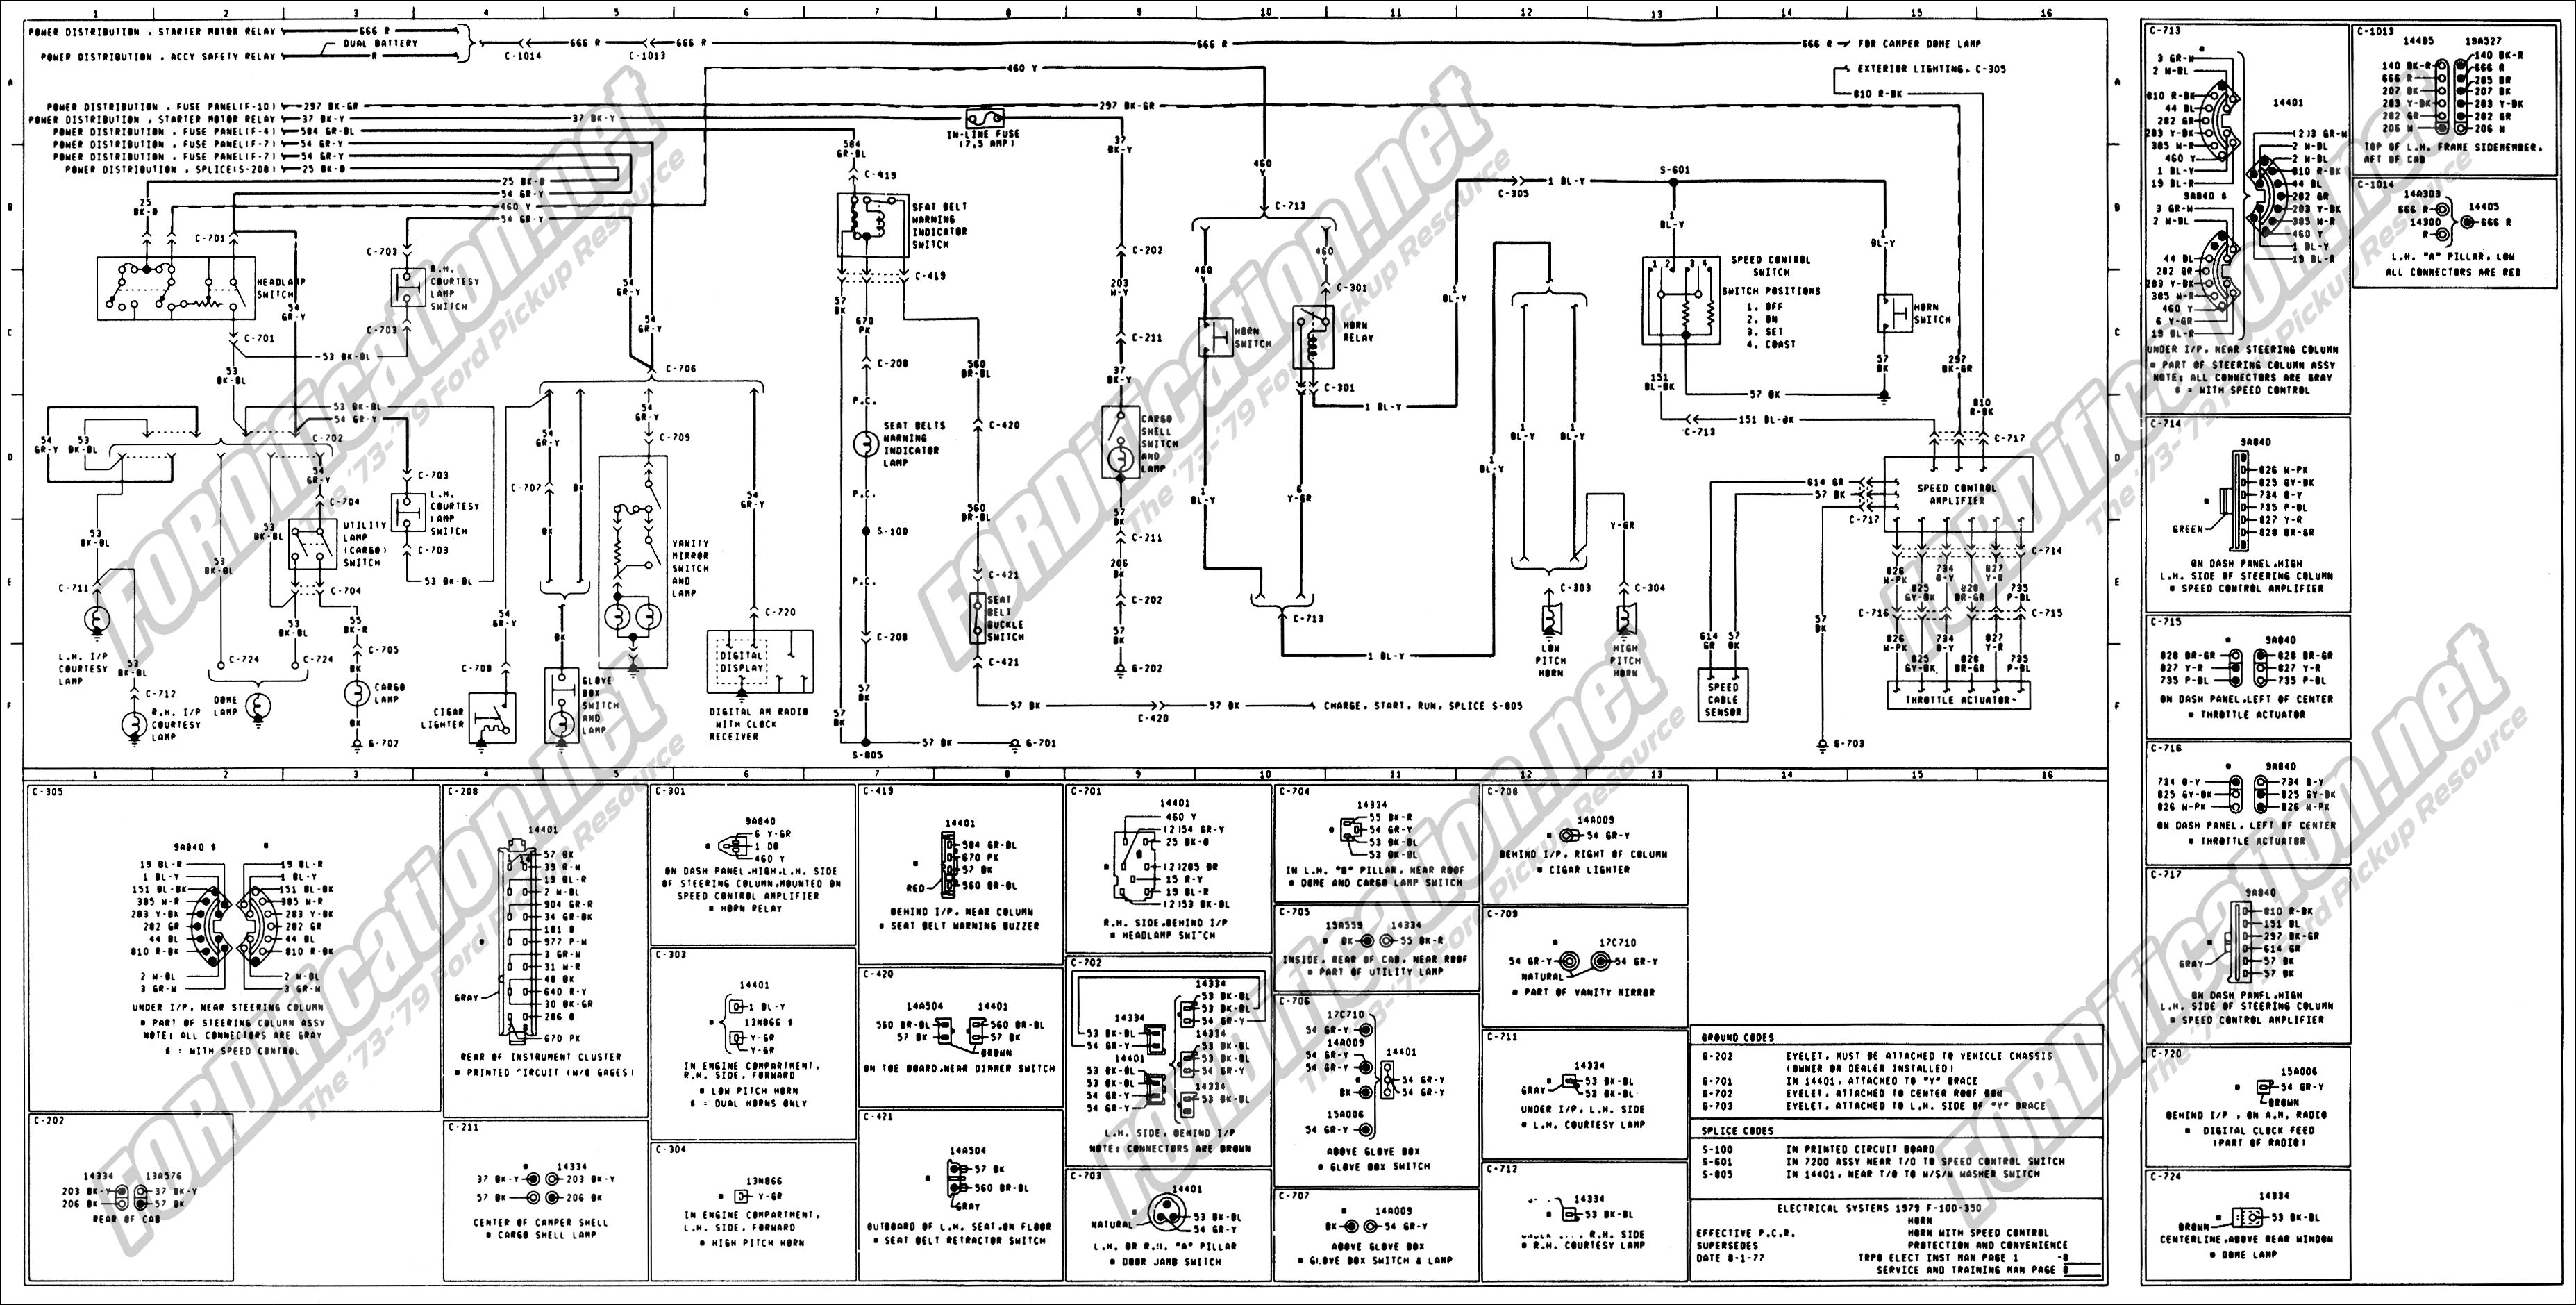 wiring_79master_8of9 wiring diagram ford f250 readingrat net Wiring Diagram for 1965 Chevy Truck at honlapkeszites.co